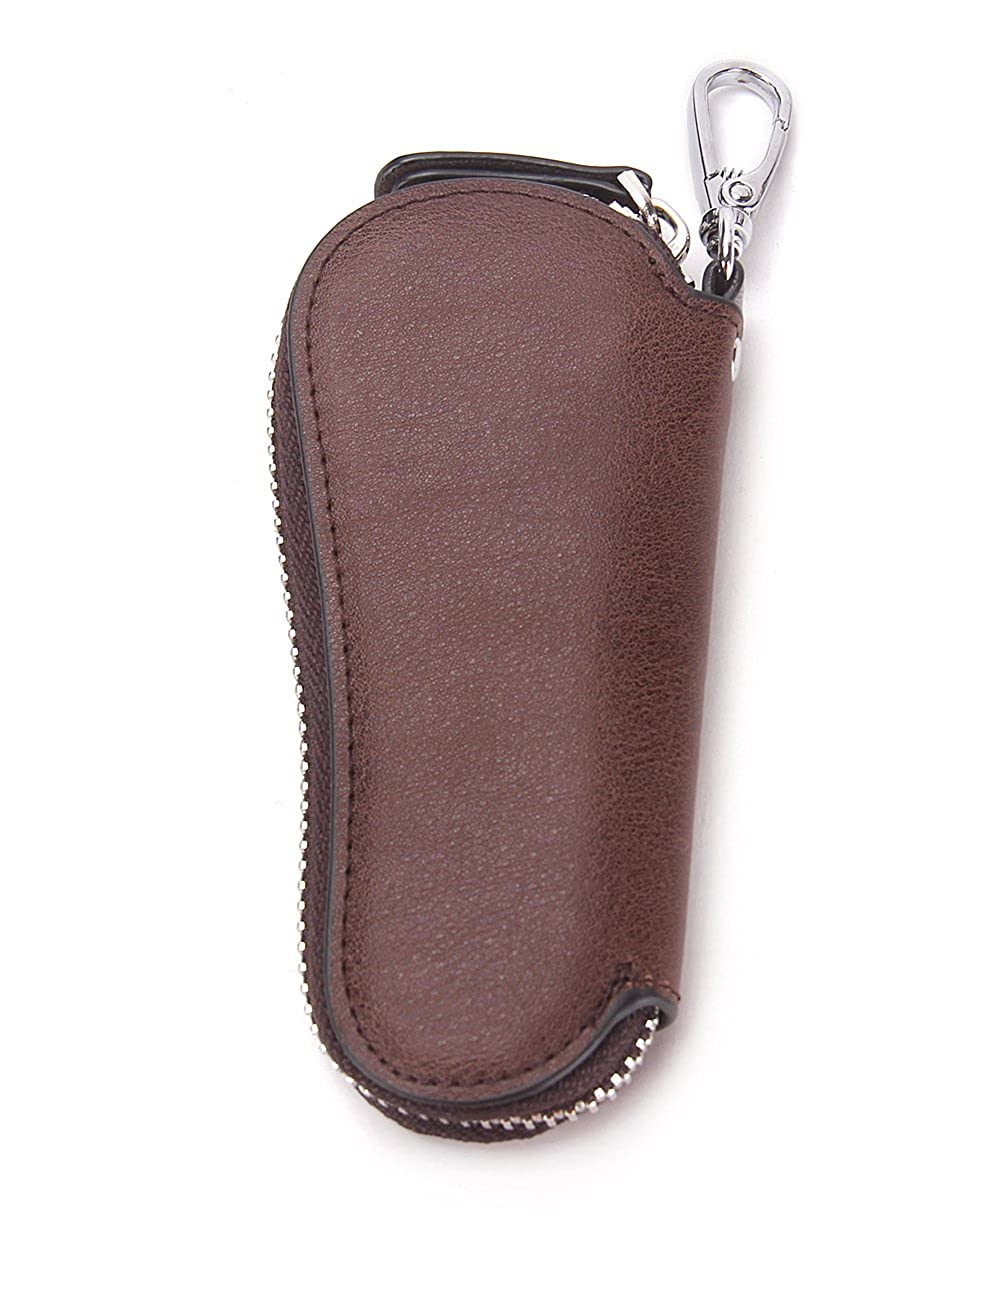 Contacts Mens Genuine Leather Car Key Holder Zipper Case Wallet Keychain Bag